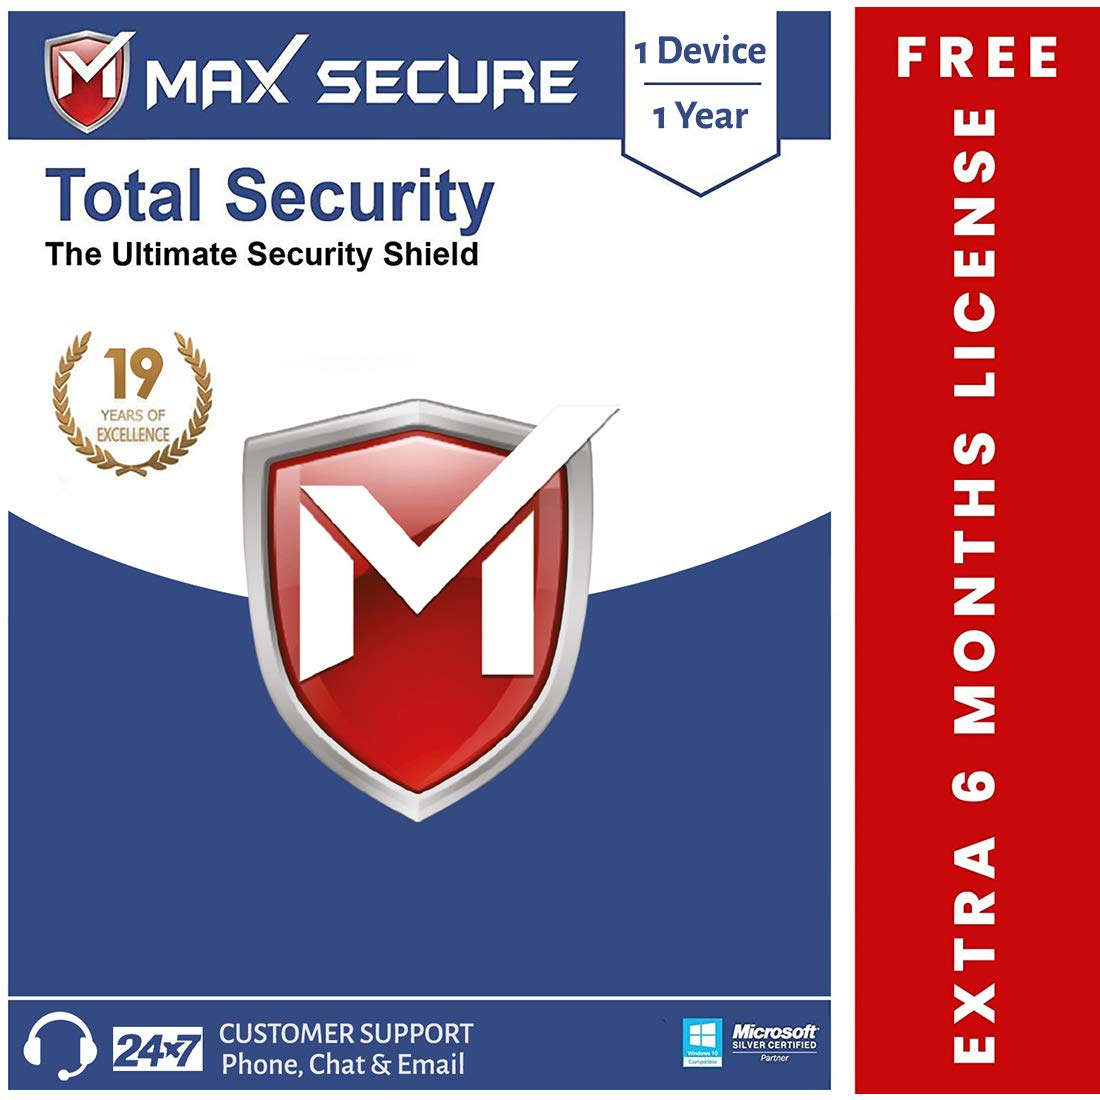 Max Secure is the Best Antivirus